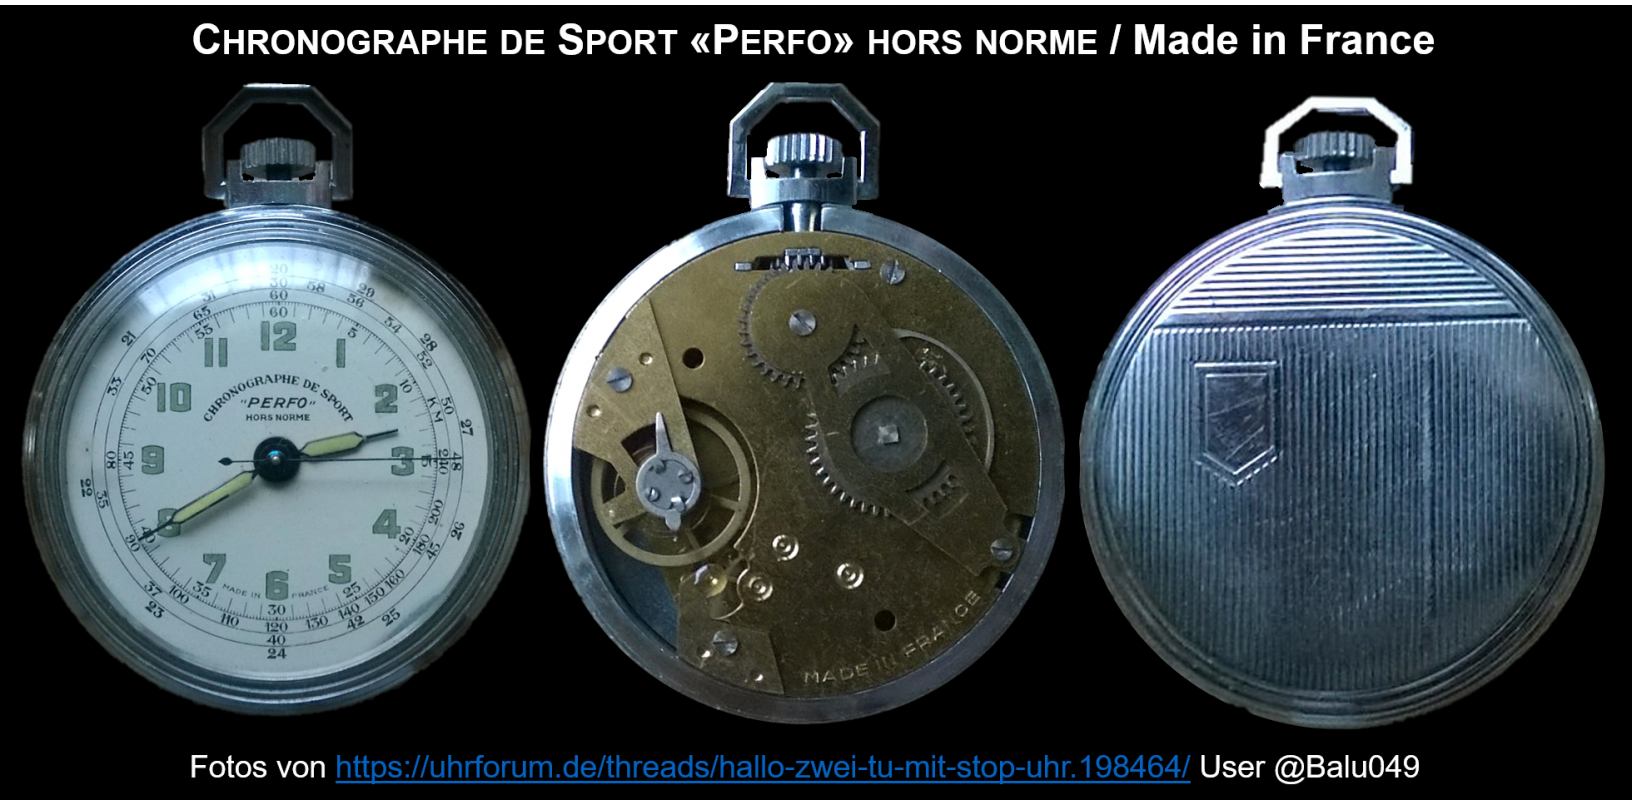 Chrono.hors.norme.22.png